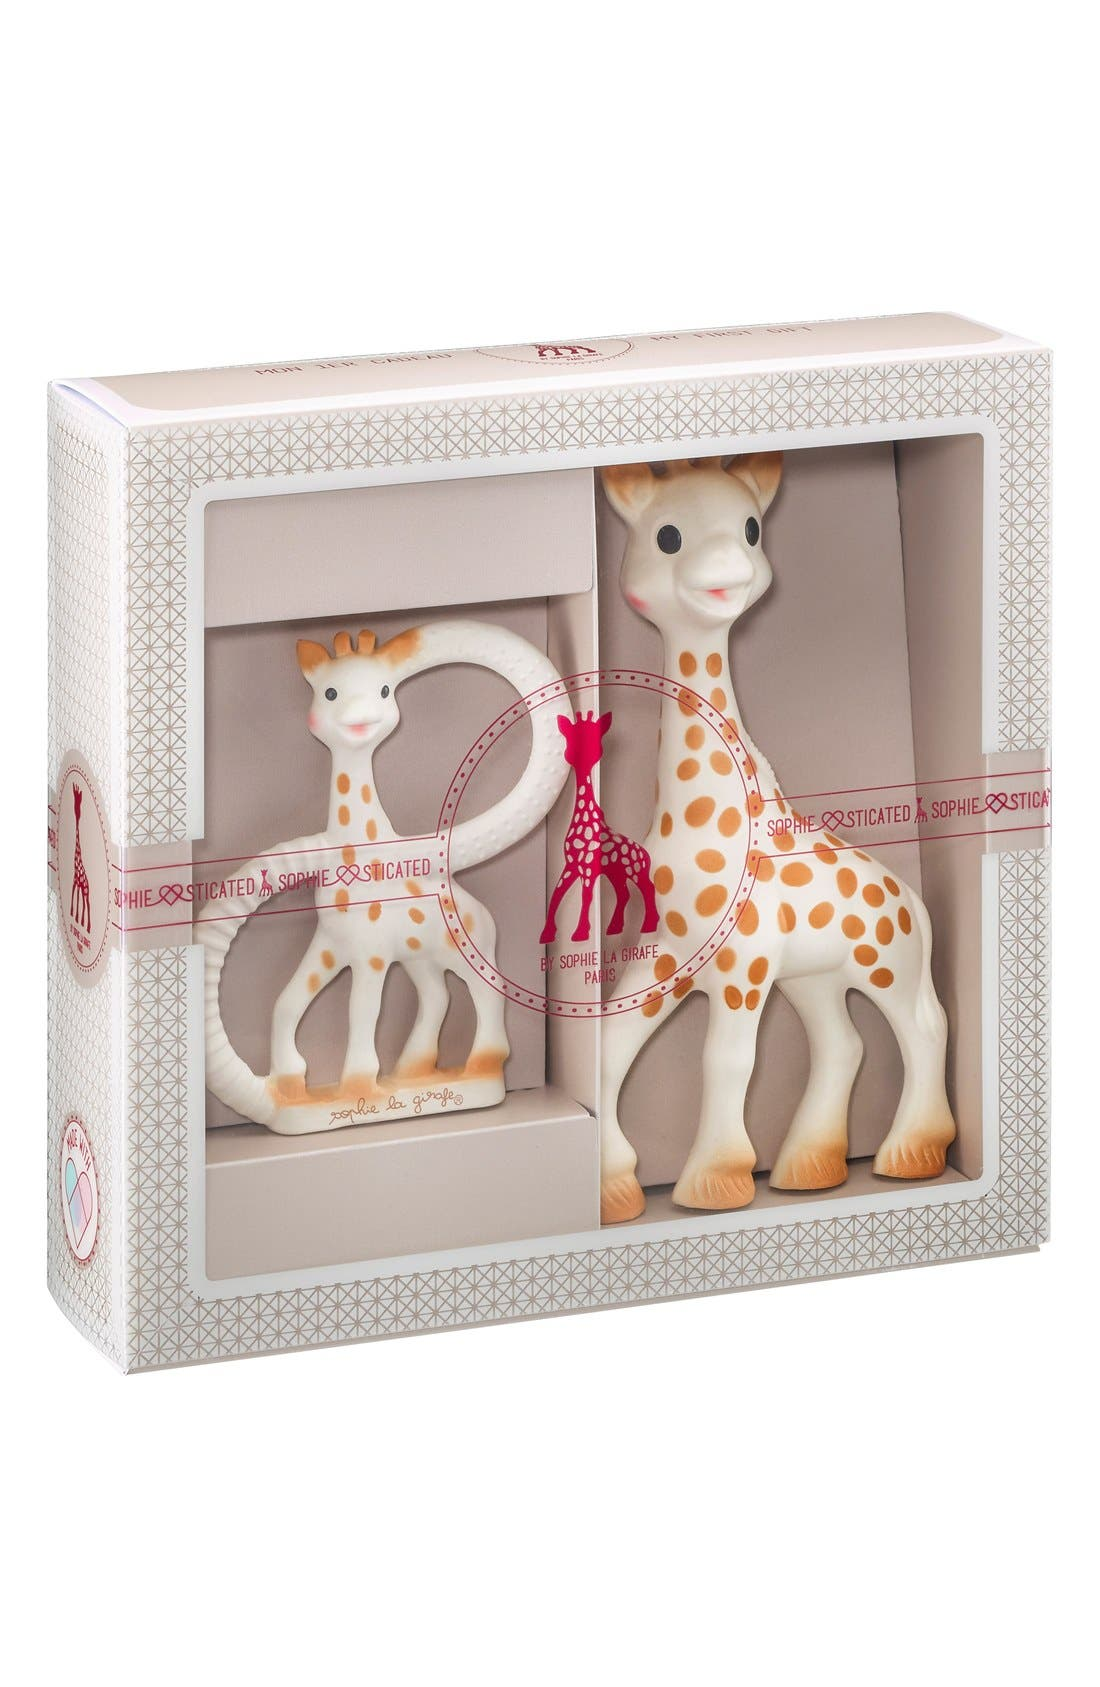 Sophie la Girafe 'Sophiesticated' Ring Teether & Teething Toy